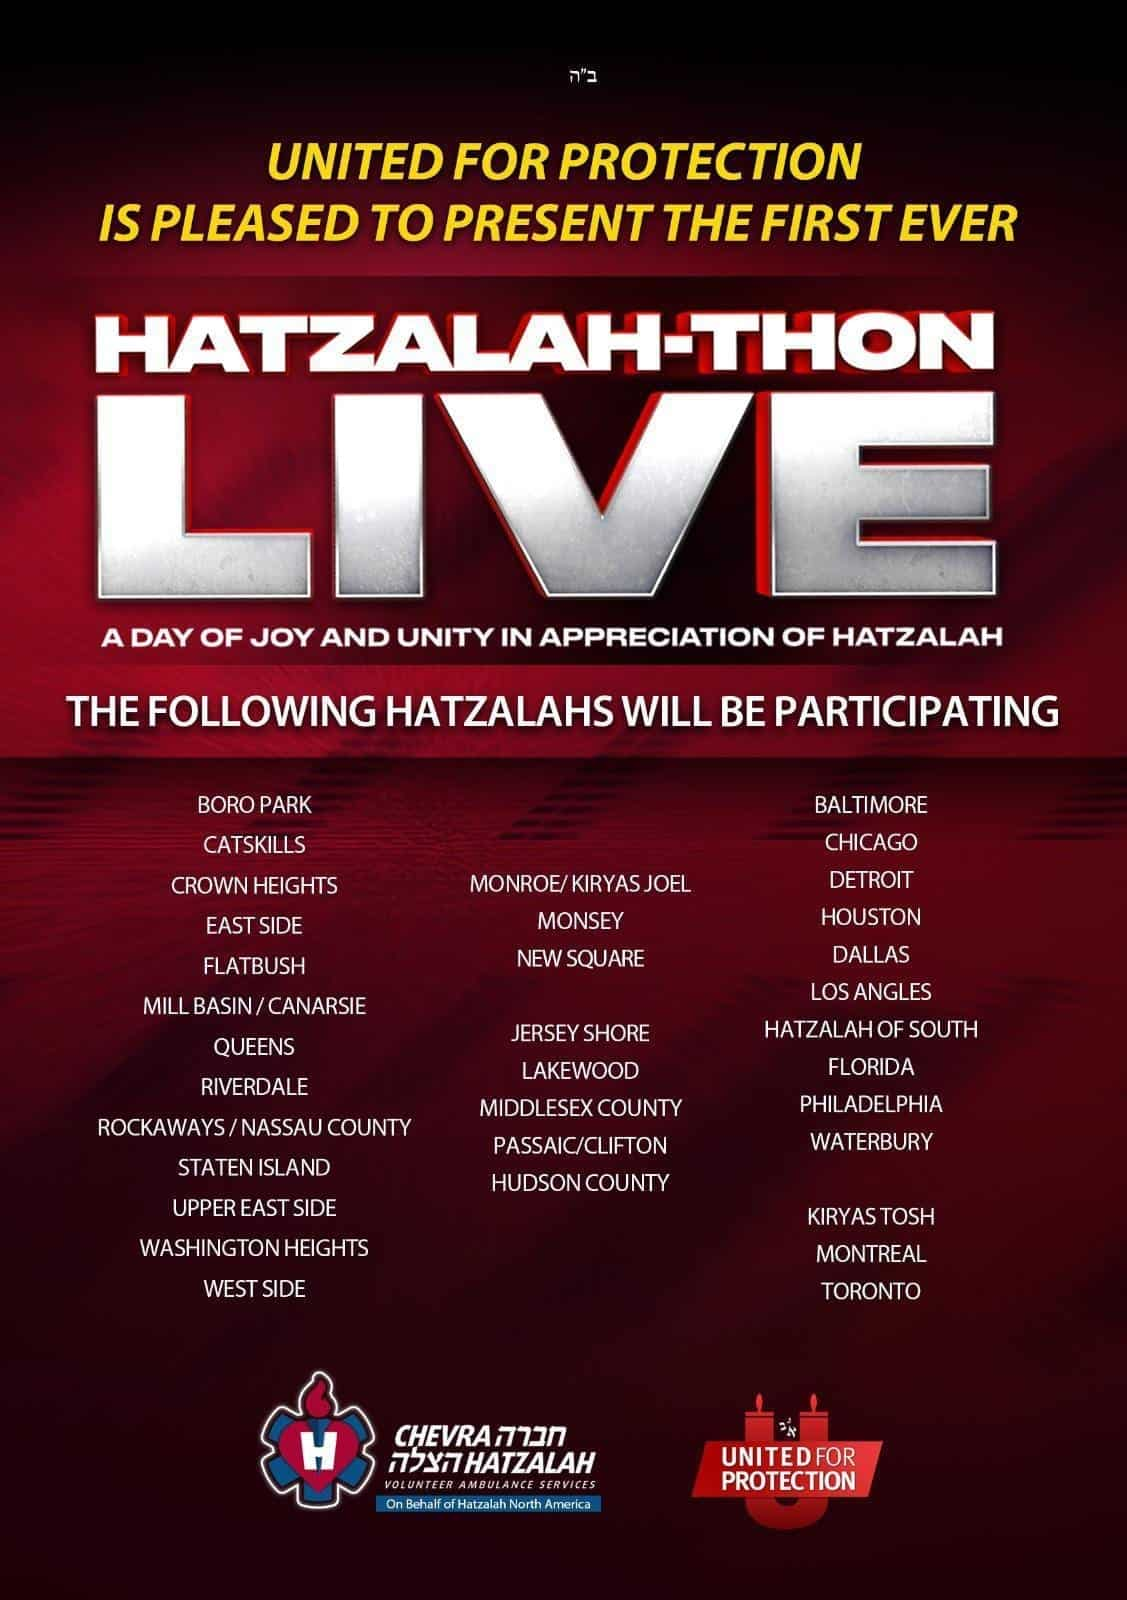 UnitedForProtection.com Presents Hatzalah-Thon Live on Lag B'Omer 3